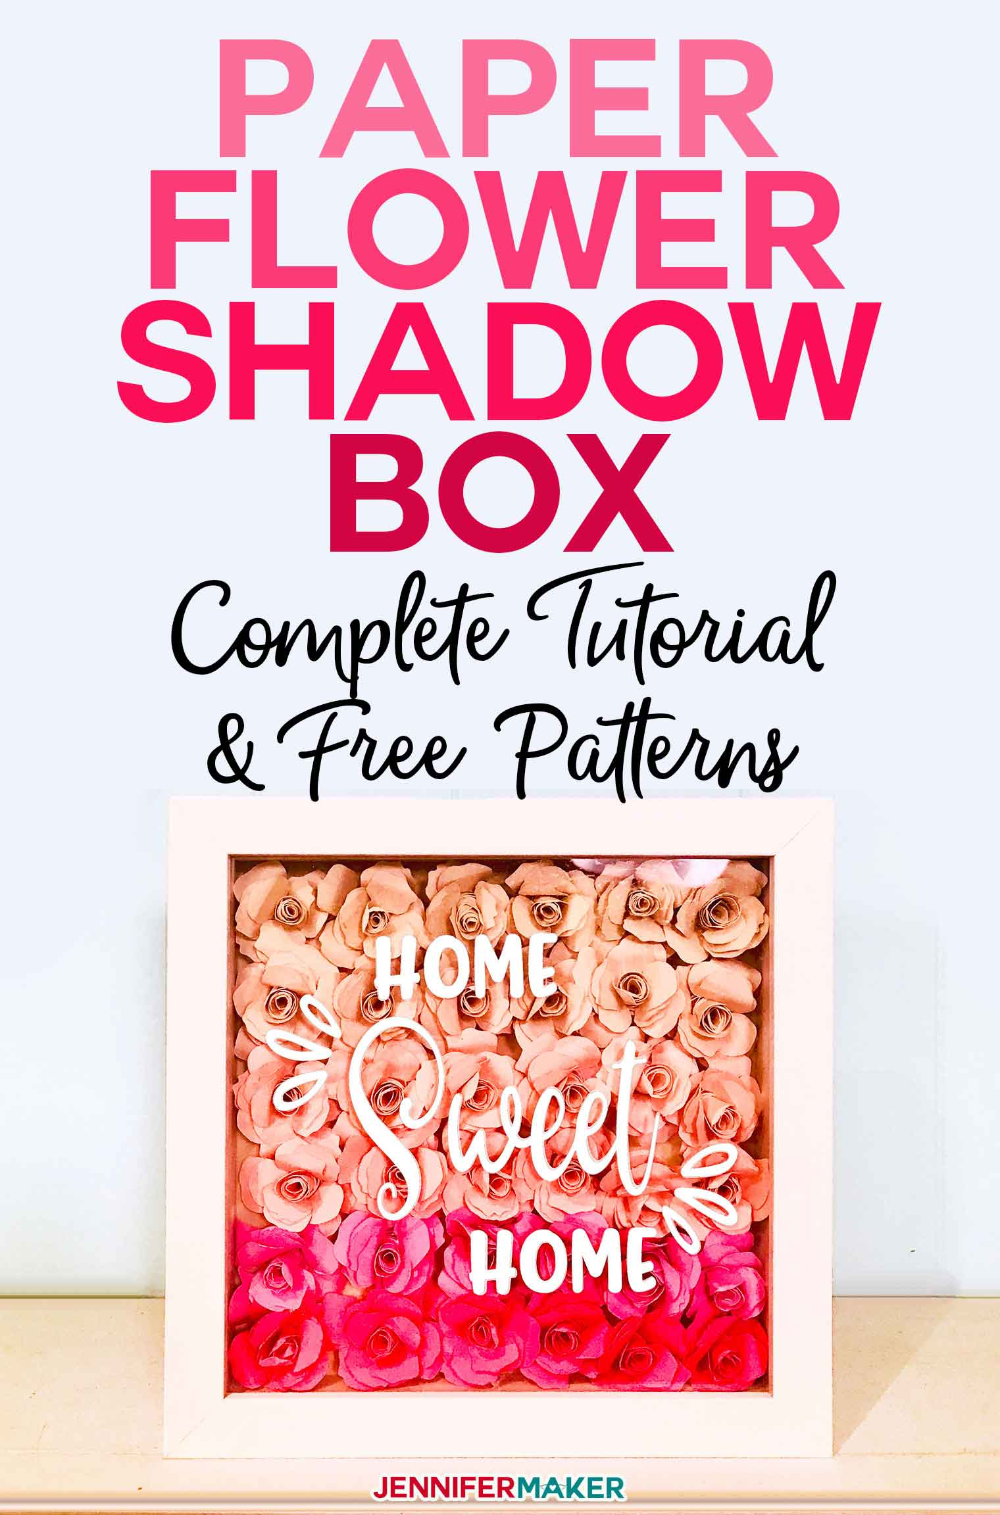 Paper Flower Shadow Box with Sizing & Quantity Charts